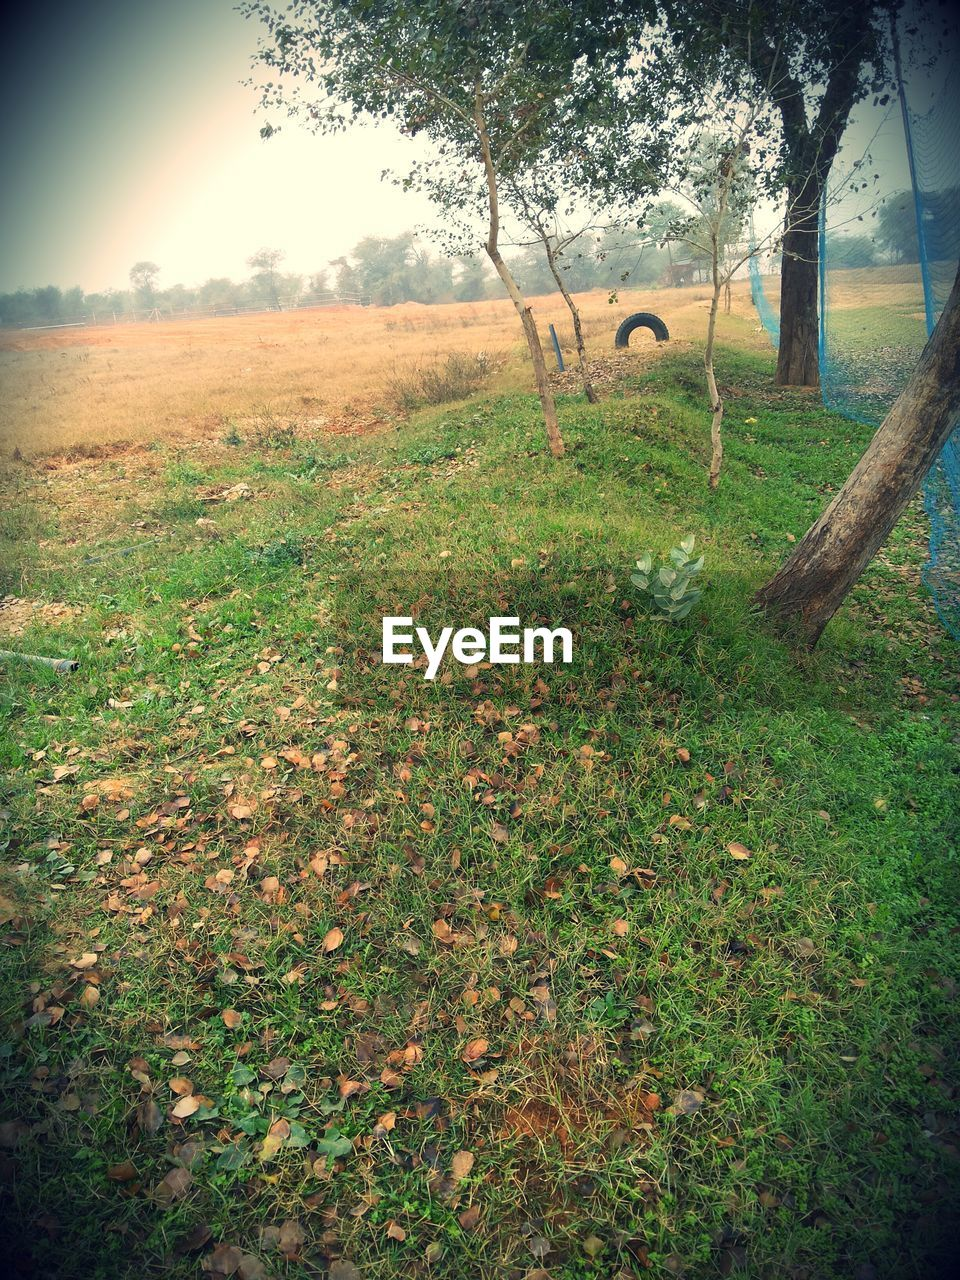 tree, grass, field, nature, growth, landscape, outdoors, beauty in nature, day, tranquility, scenics, no people, sky, mammal